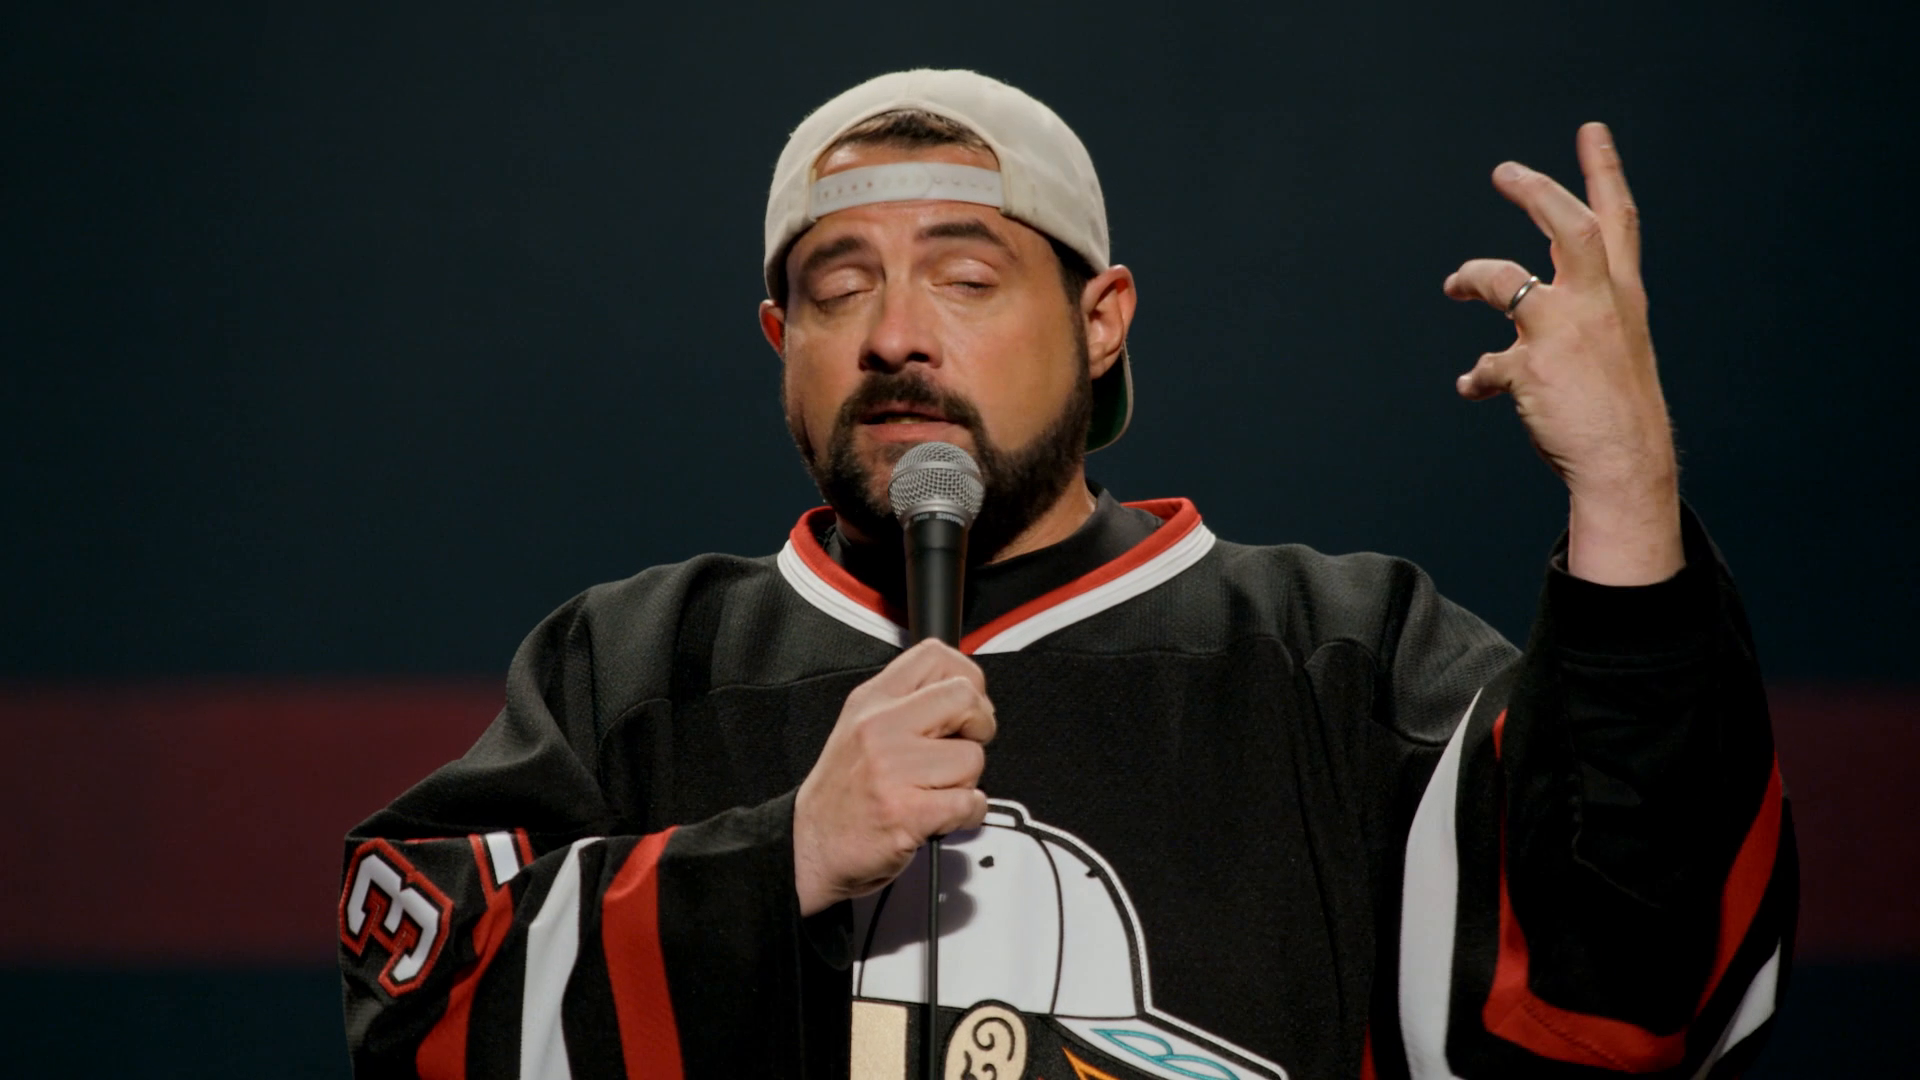 Kevin Smith Silent But Deadly 2018 Extended Edition AMZN 1080p WEB-DL DD2.0 H264-NTG